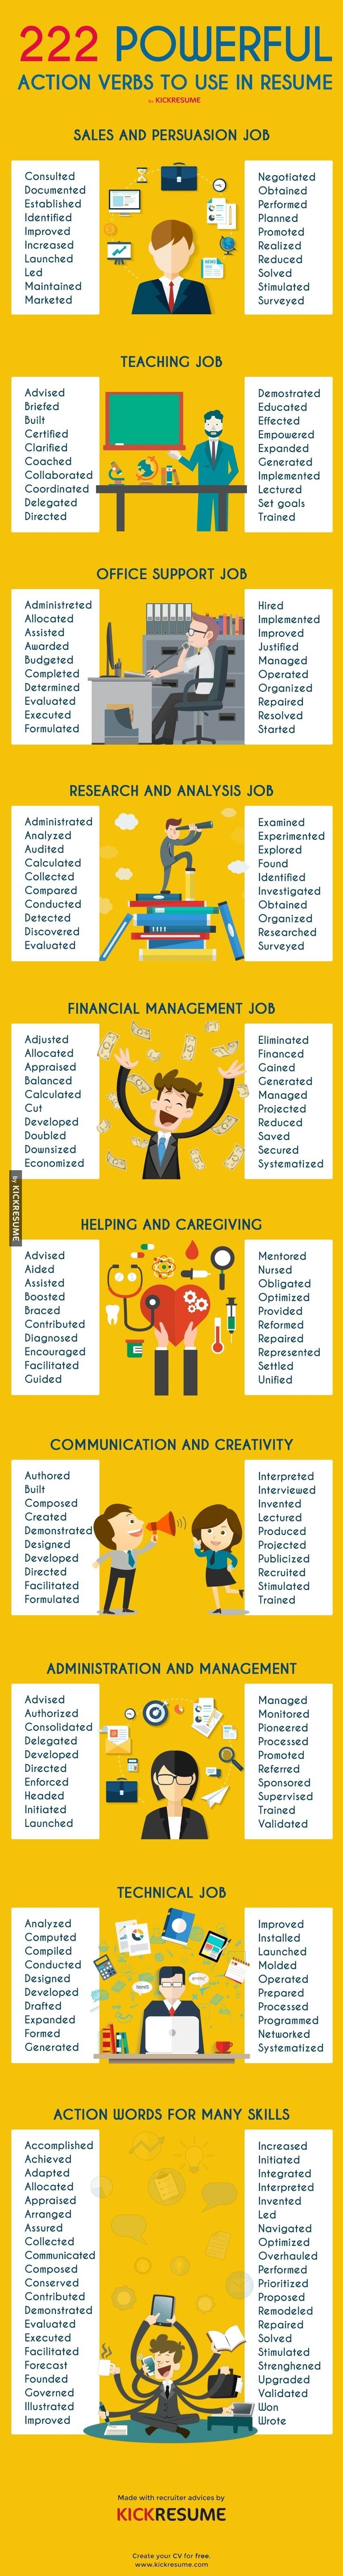 200  powerful action verbs perfect for your resume  infographic